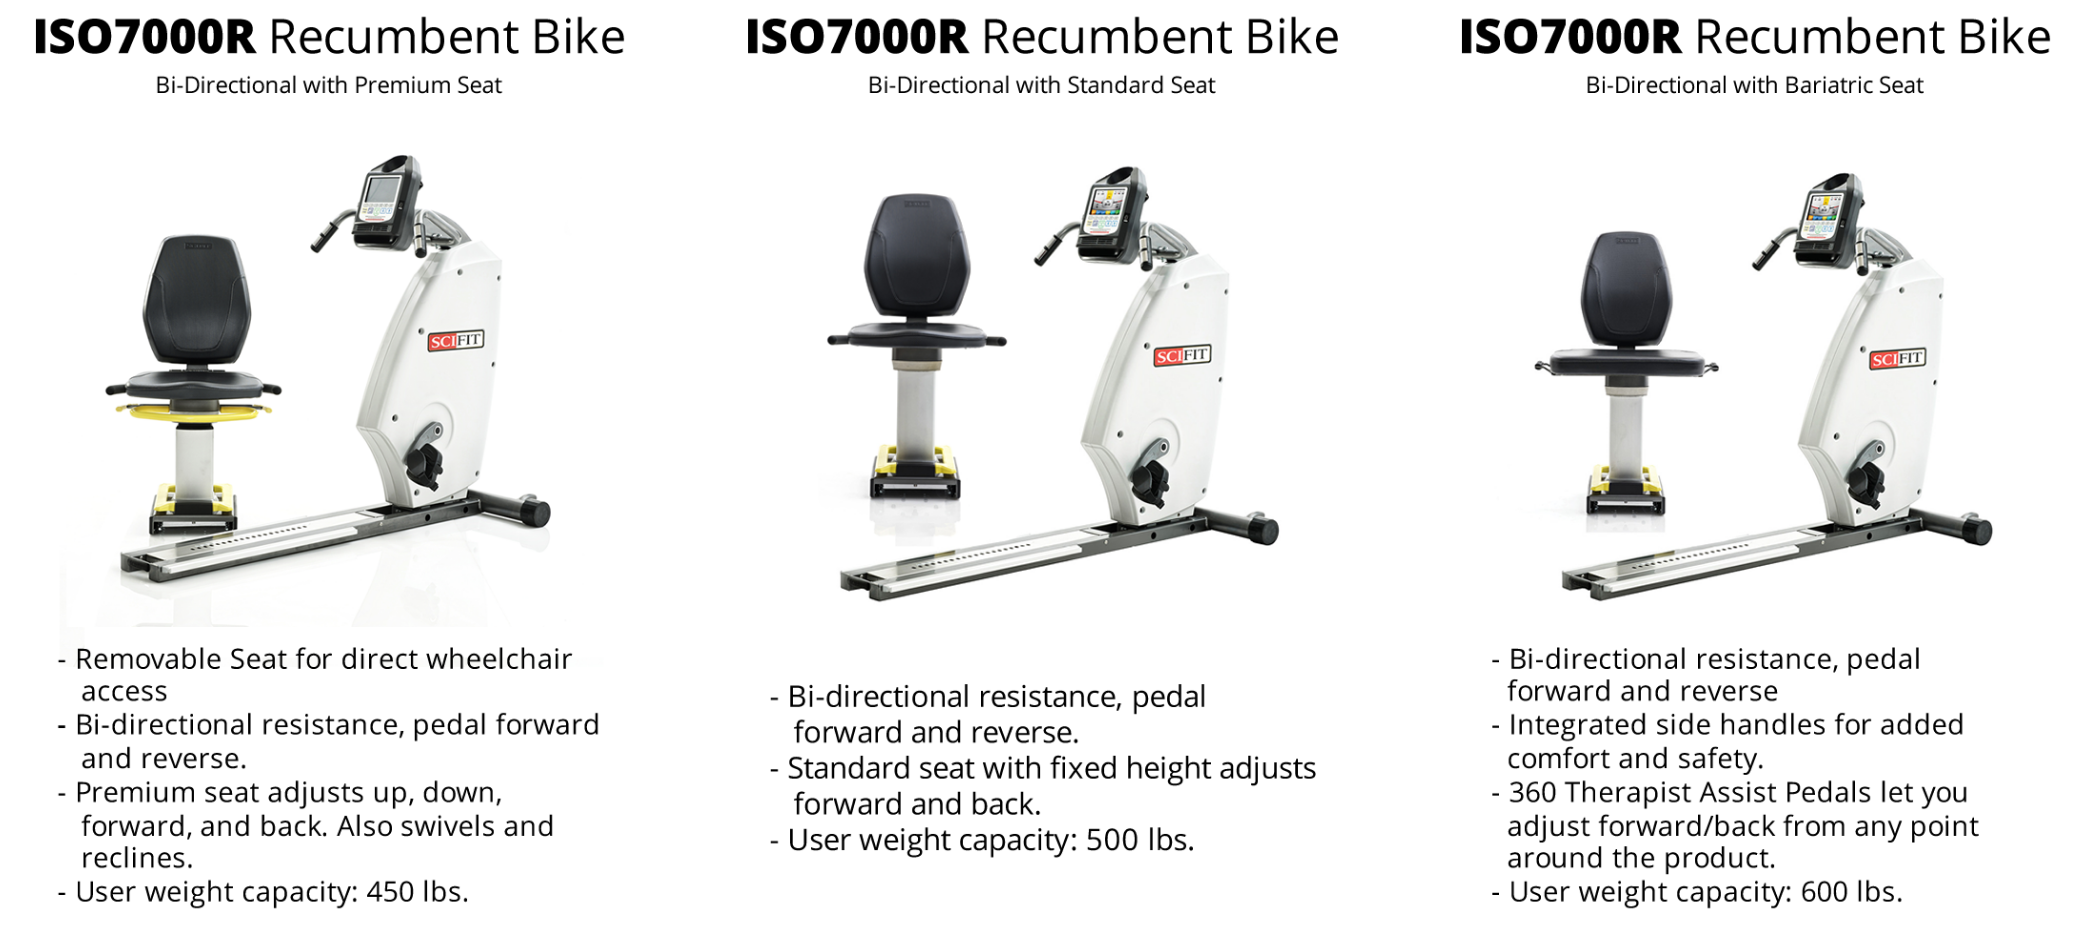 iso700r-models-compare.png